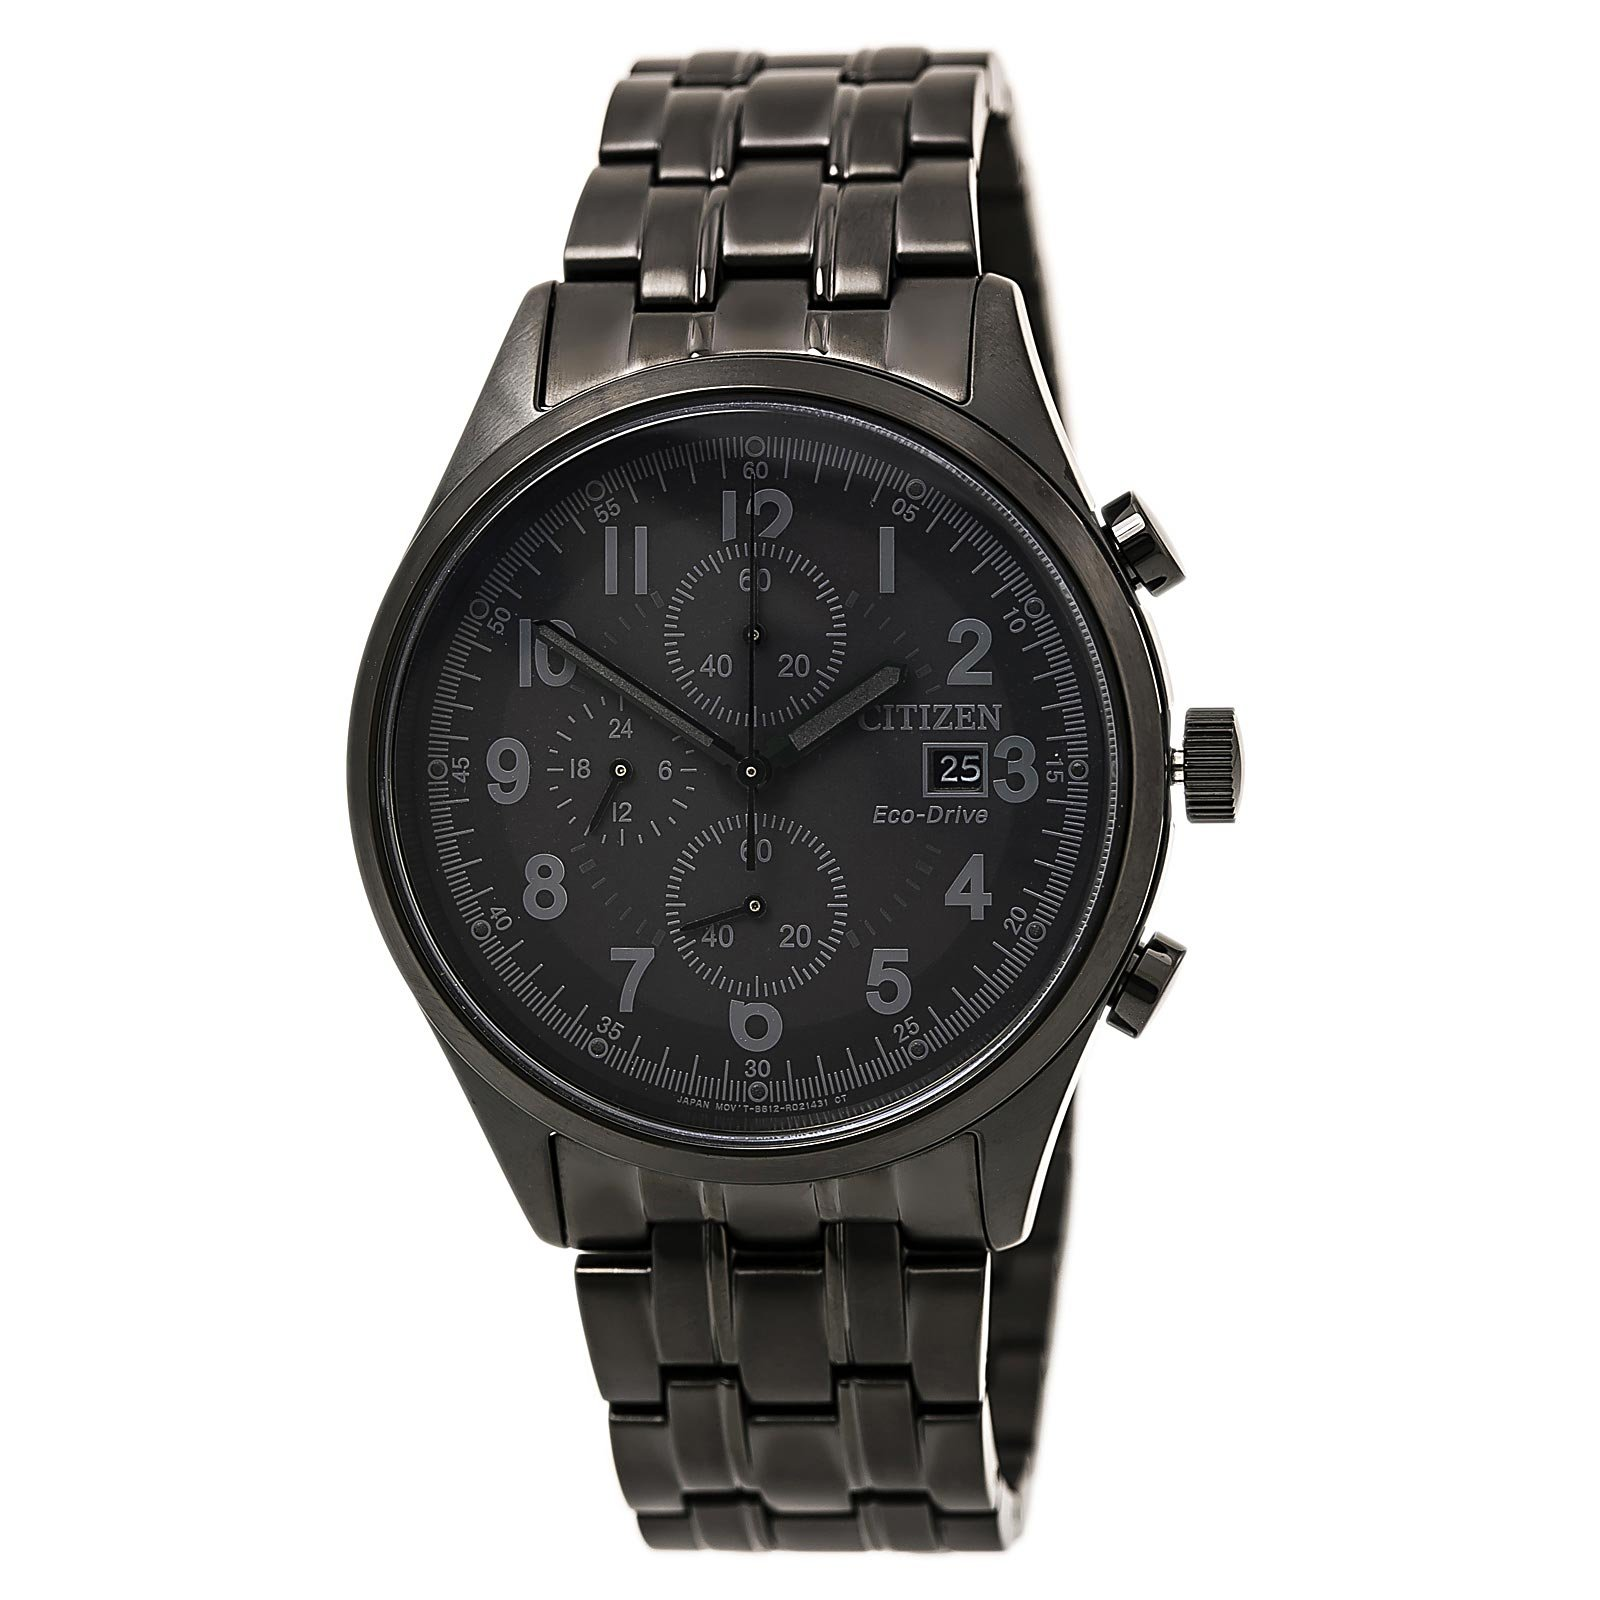 Citizen Men's Eco-Drive Black Ion-Plated Chandler Chronograph Watch